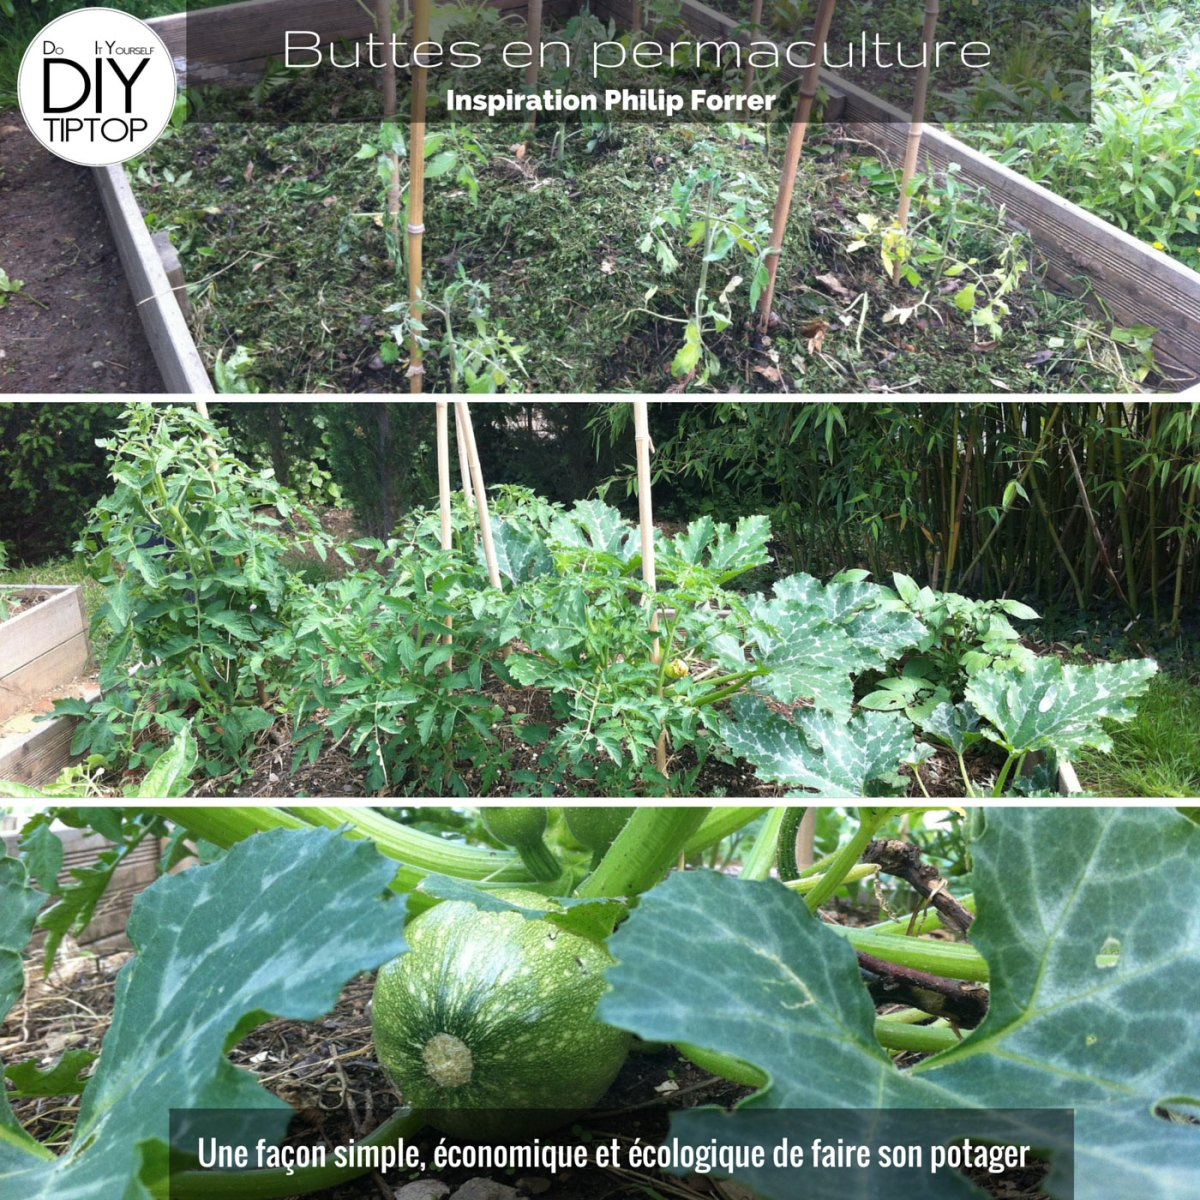 diy un potager bio sur ma terrasse et dans le jardin della mama d i y tip top. Black Bedroom Furniture Sets. Home Design Ideas